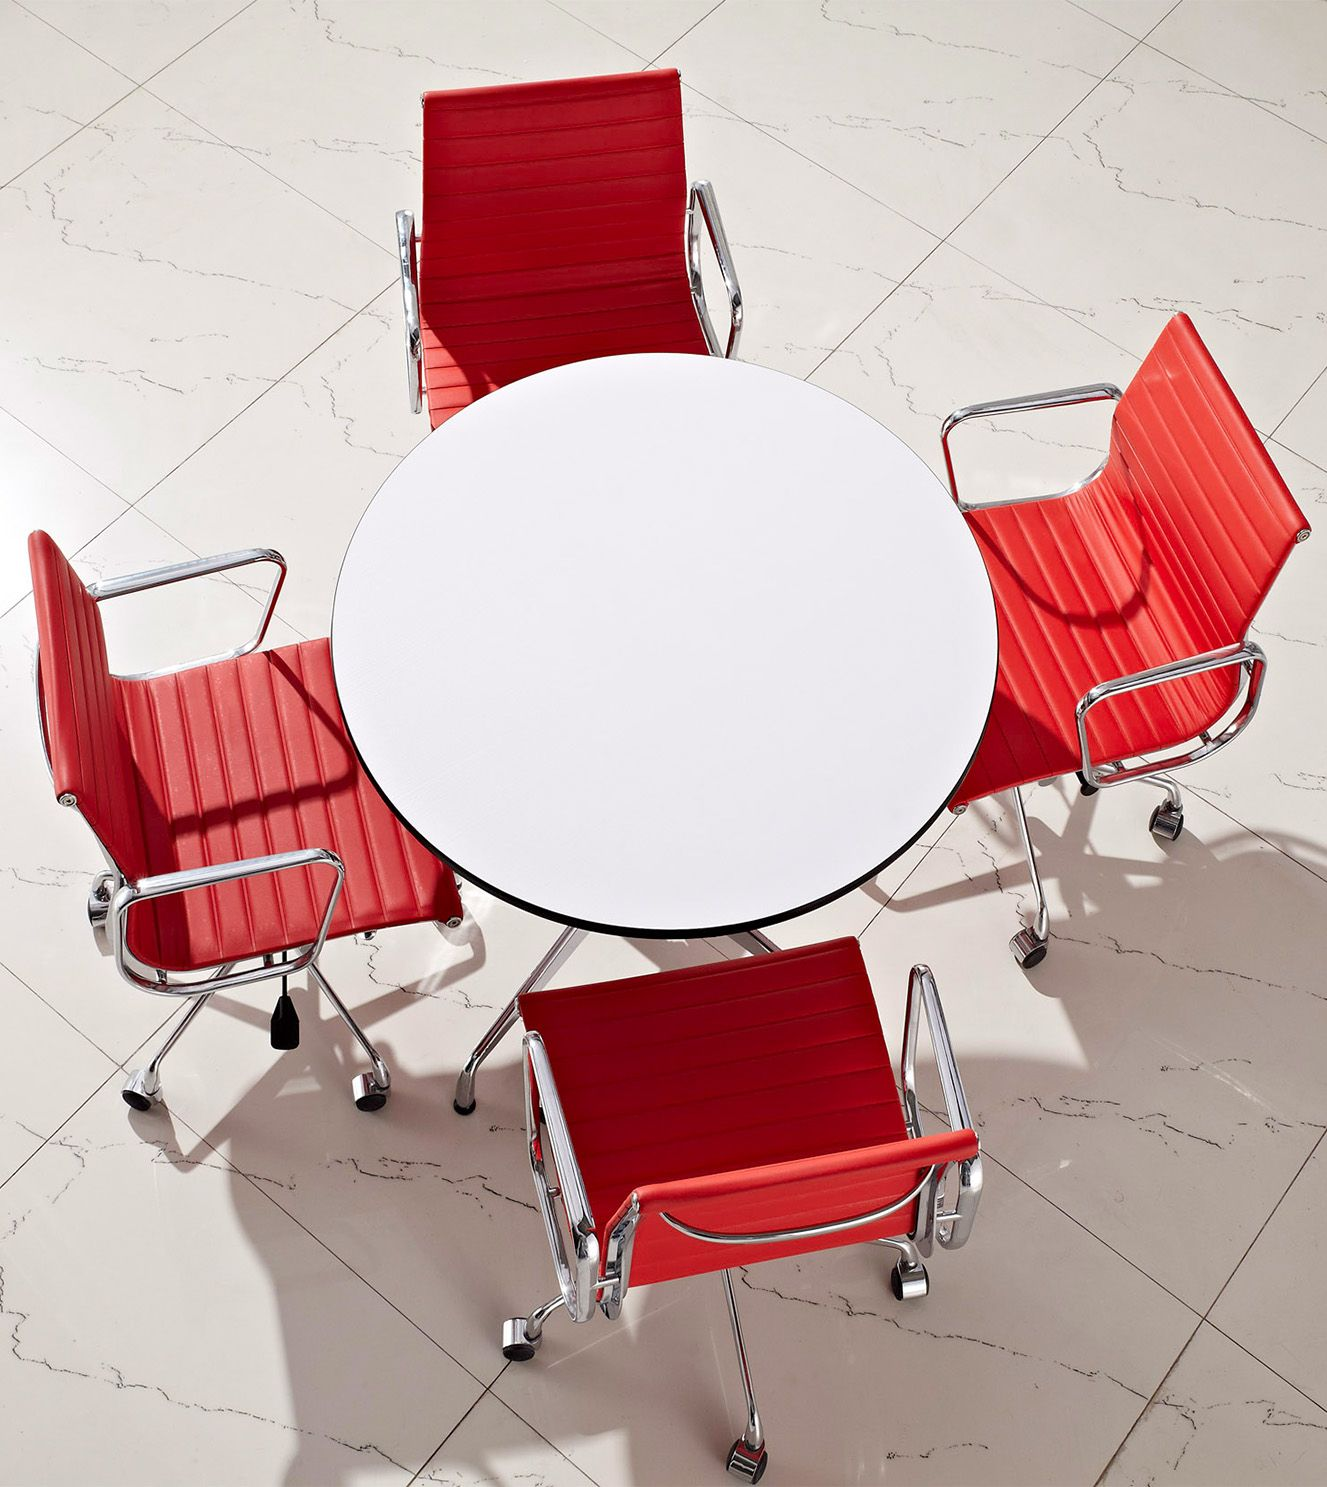 Copy Designer Furniture meeting table in the modern office environment. replica designer